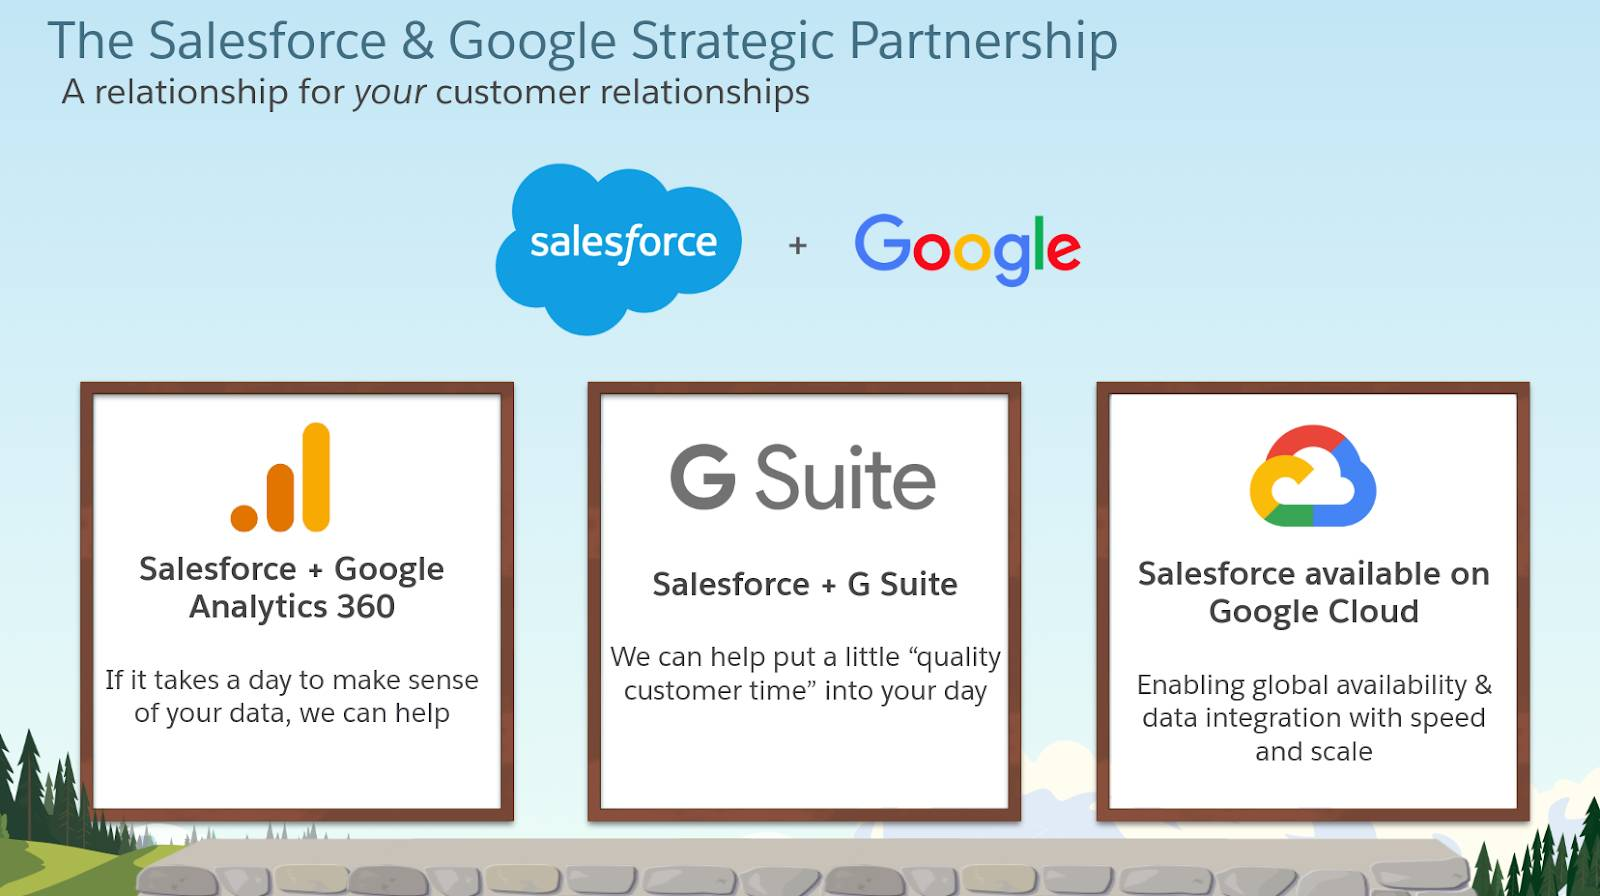 The Salesforce and Google Strategic Partnership is focused on the integration with the Google Marketing Platform, G Suite, and availability on Google Cloud.